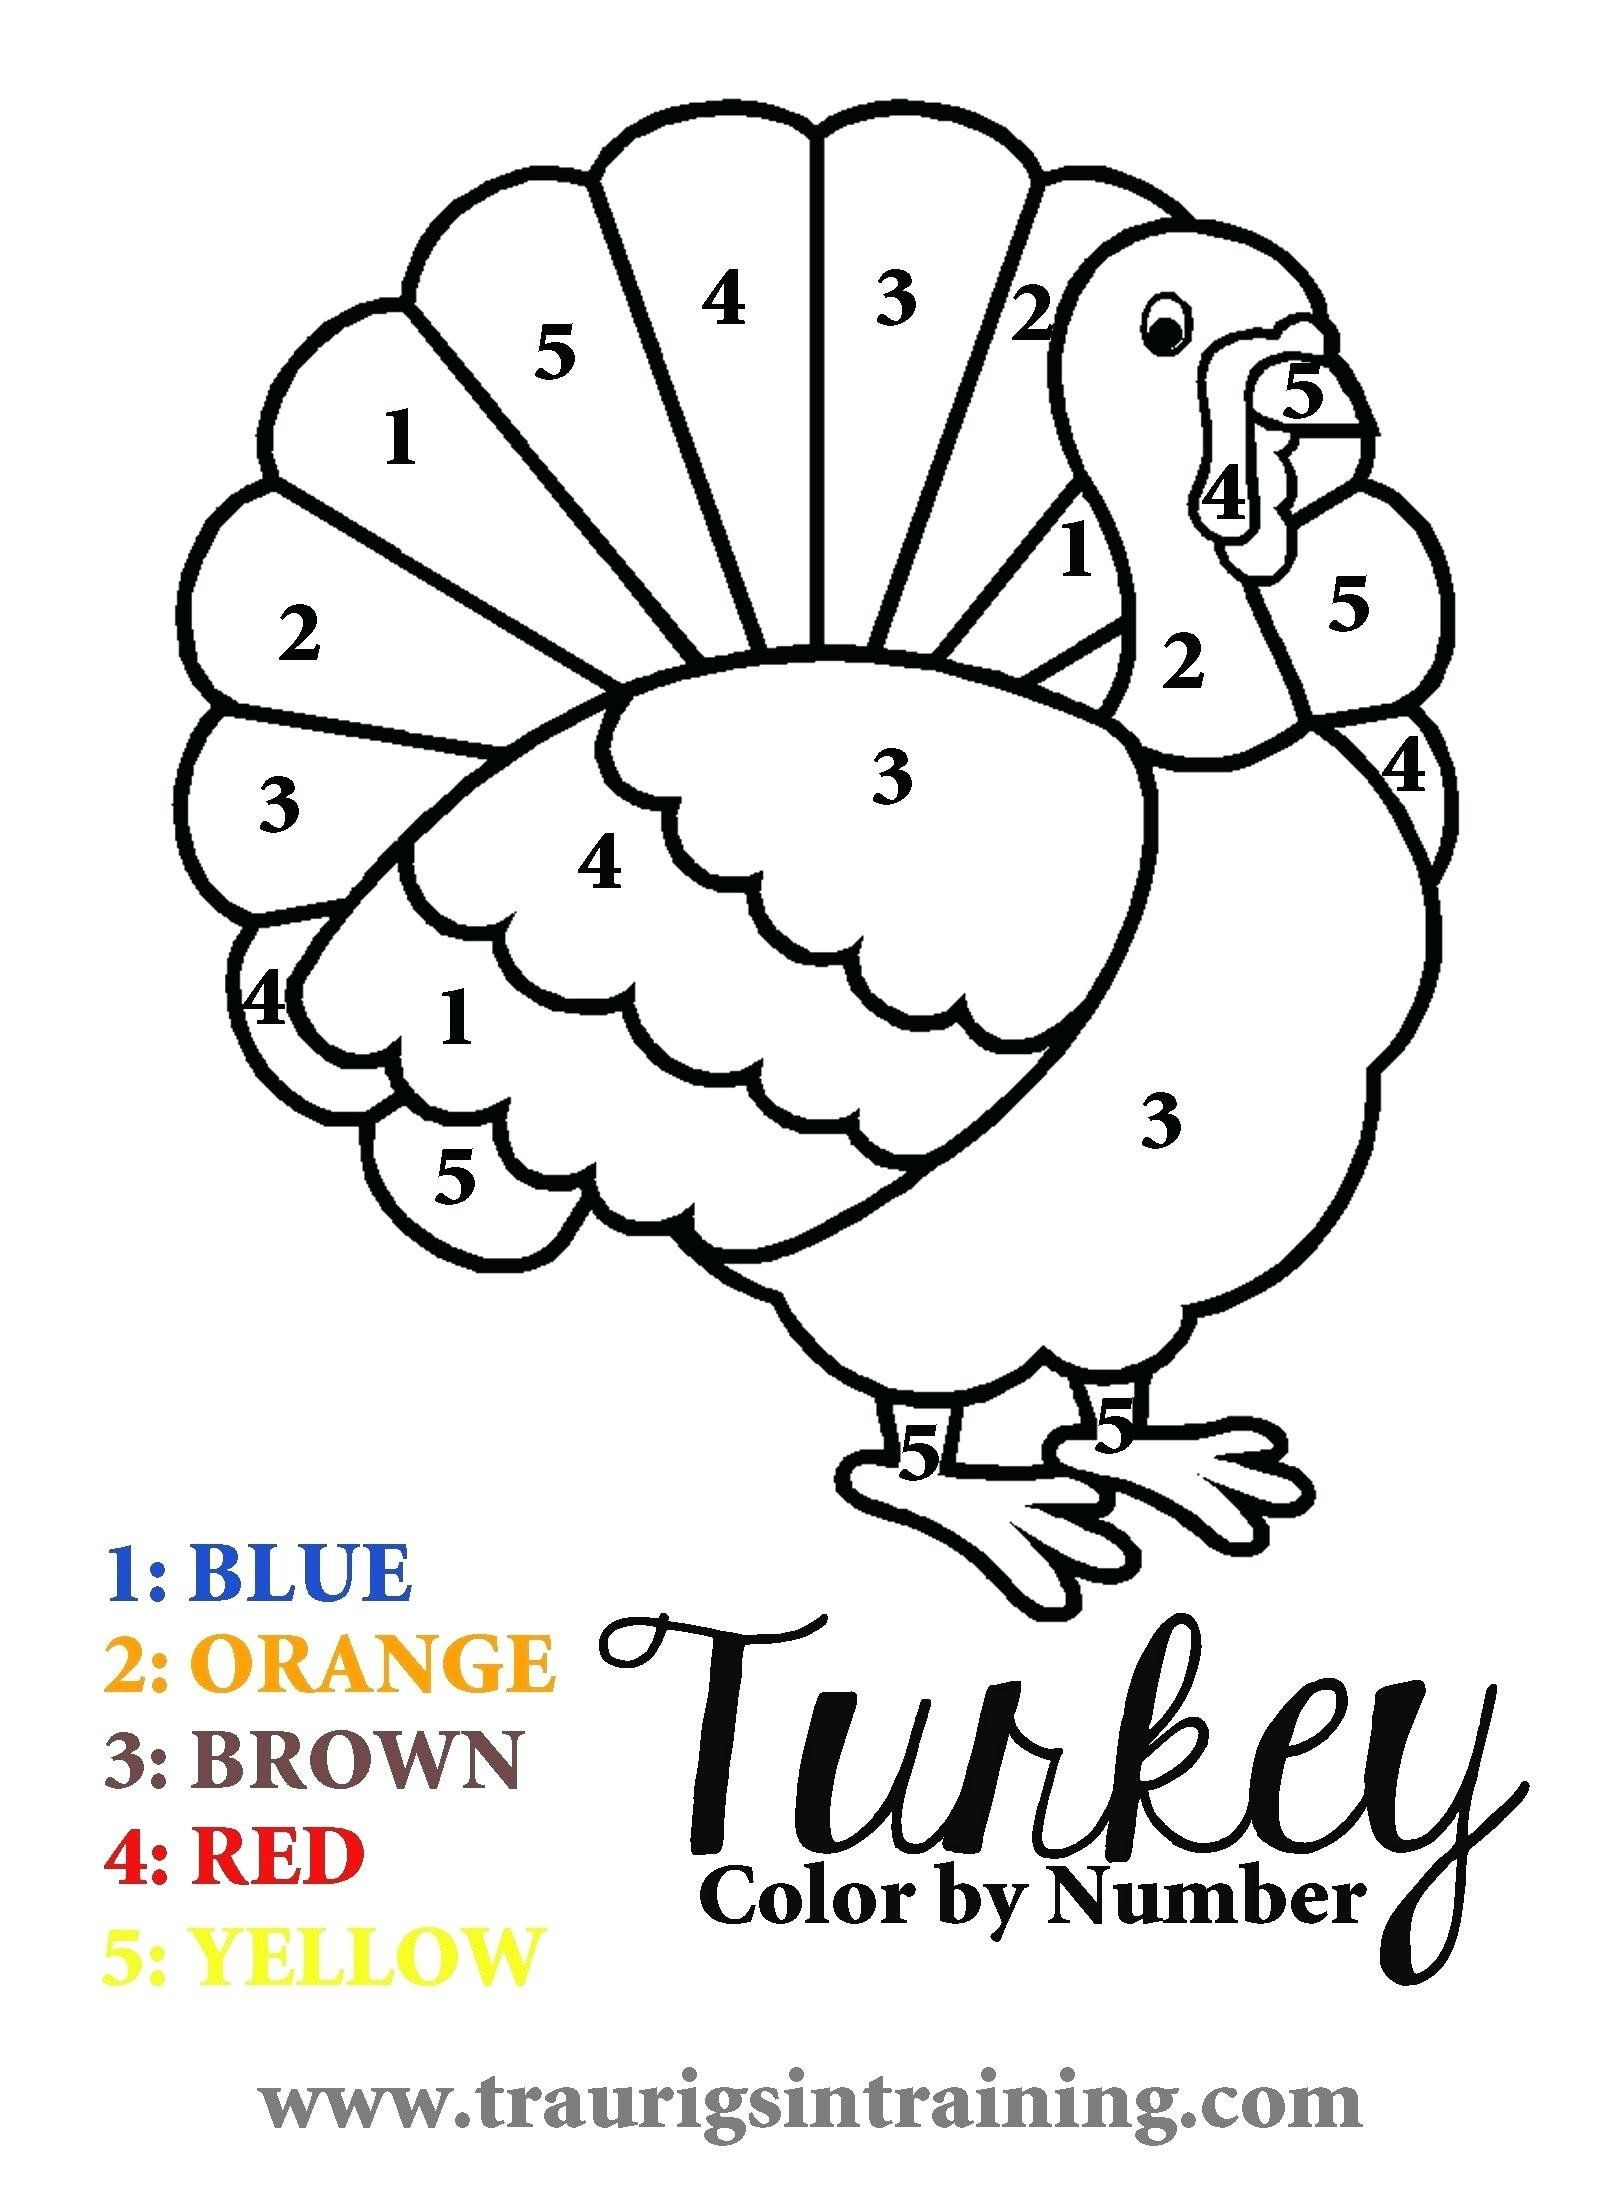 Thanksgiving Turkey Coloring Pages Awesome Thanksgiving Coloring Page For Preschool Turkey Coloring Pages Thanksgiving Coloring Pages Coloring Pages For Kids